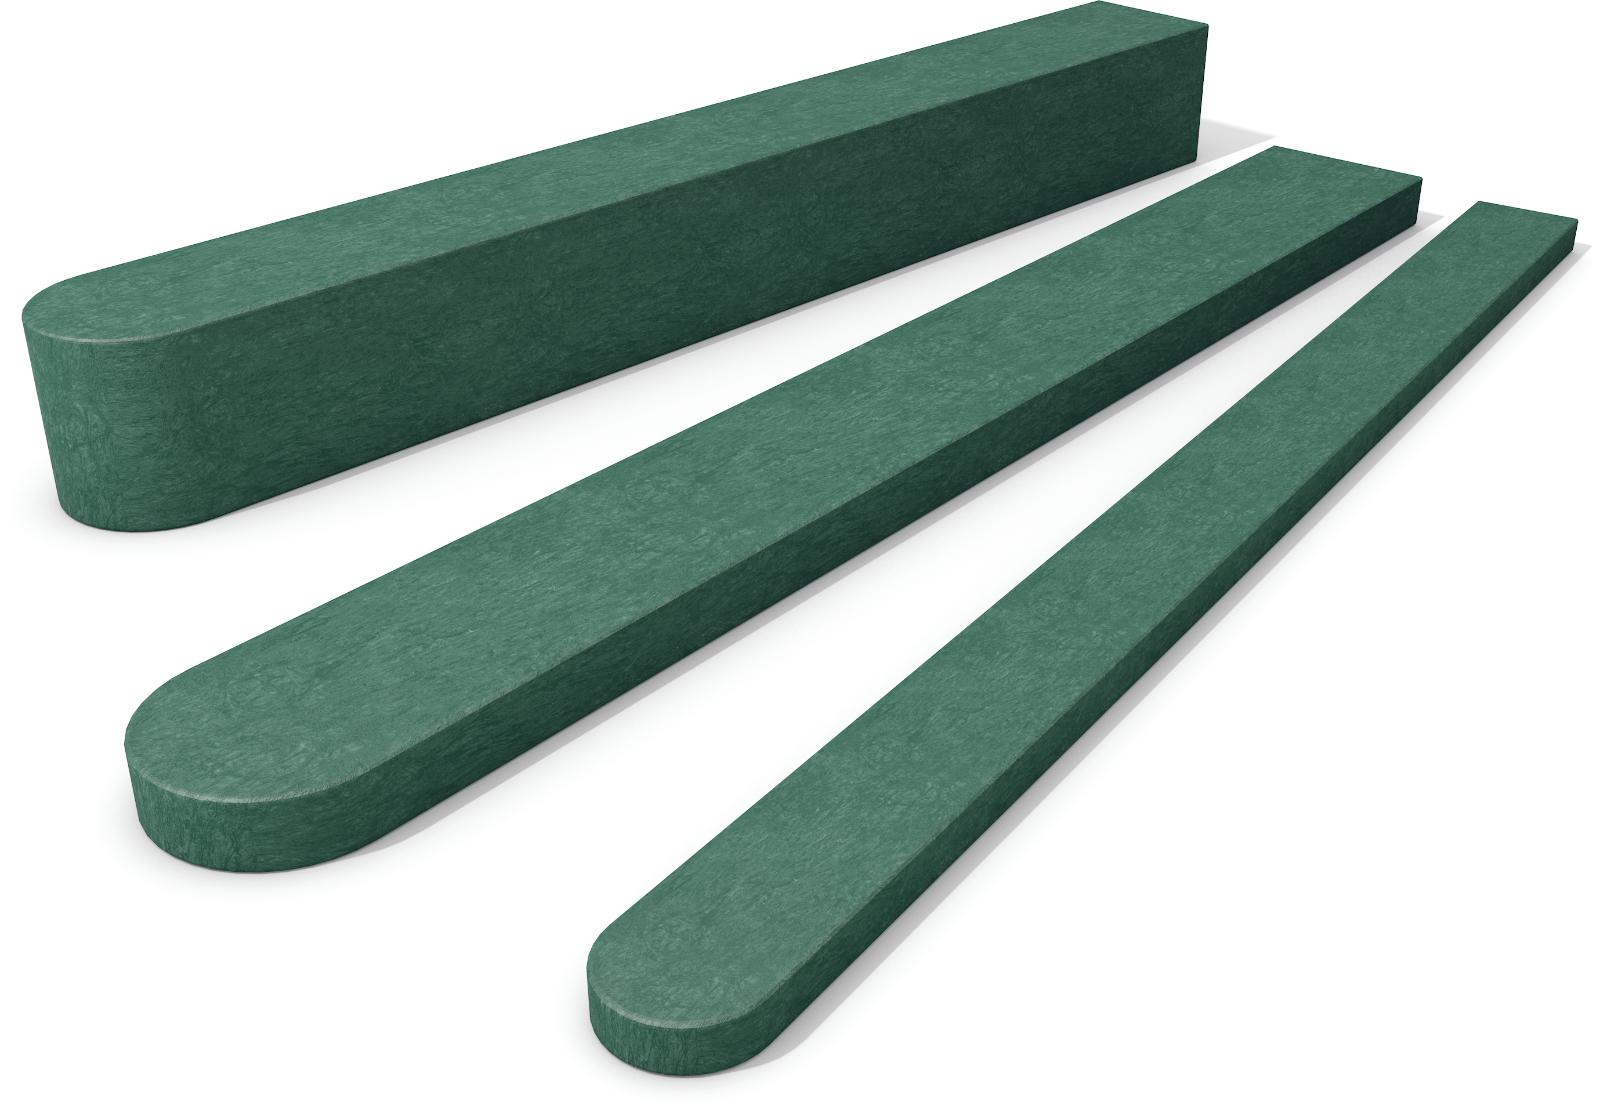 Fence Post with Round End Green 90mm x 90mm x 2000mm